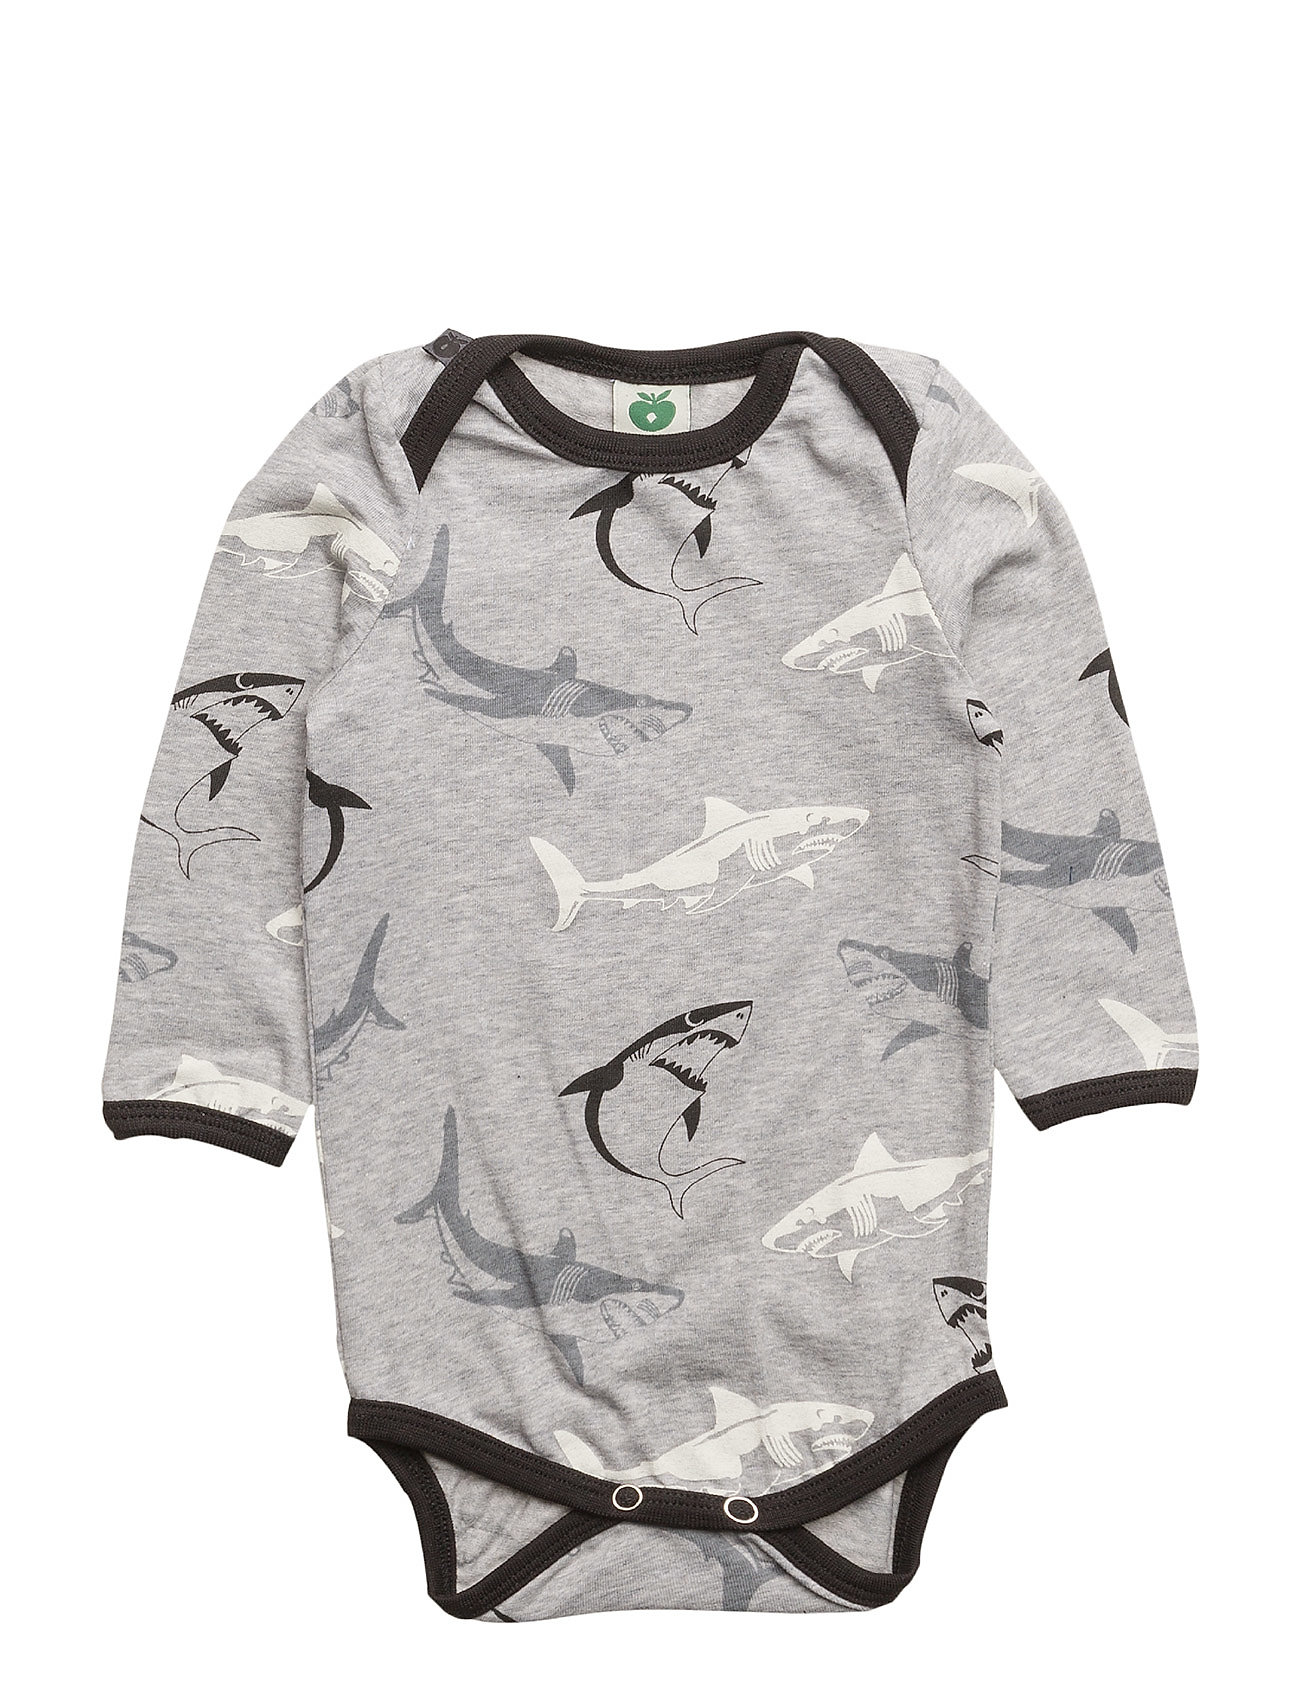 Småfolk Body LS. Shark - GREY MIX